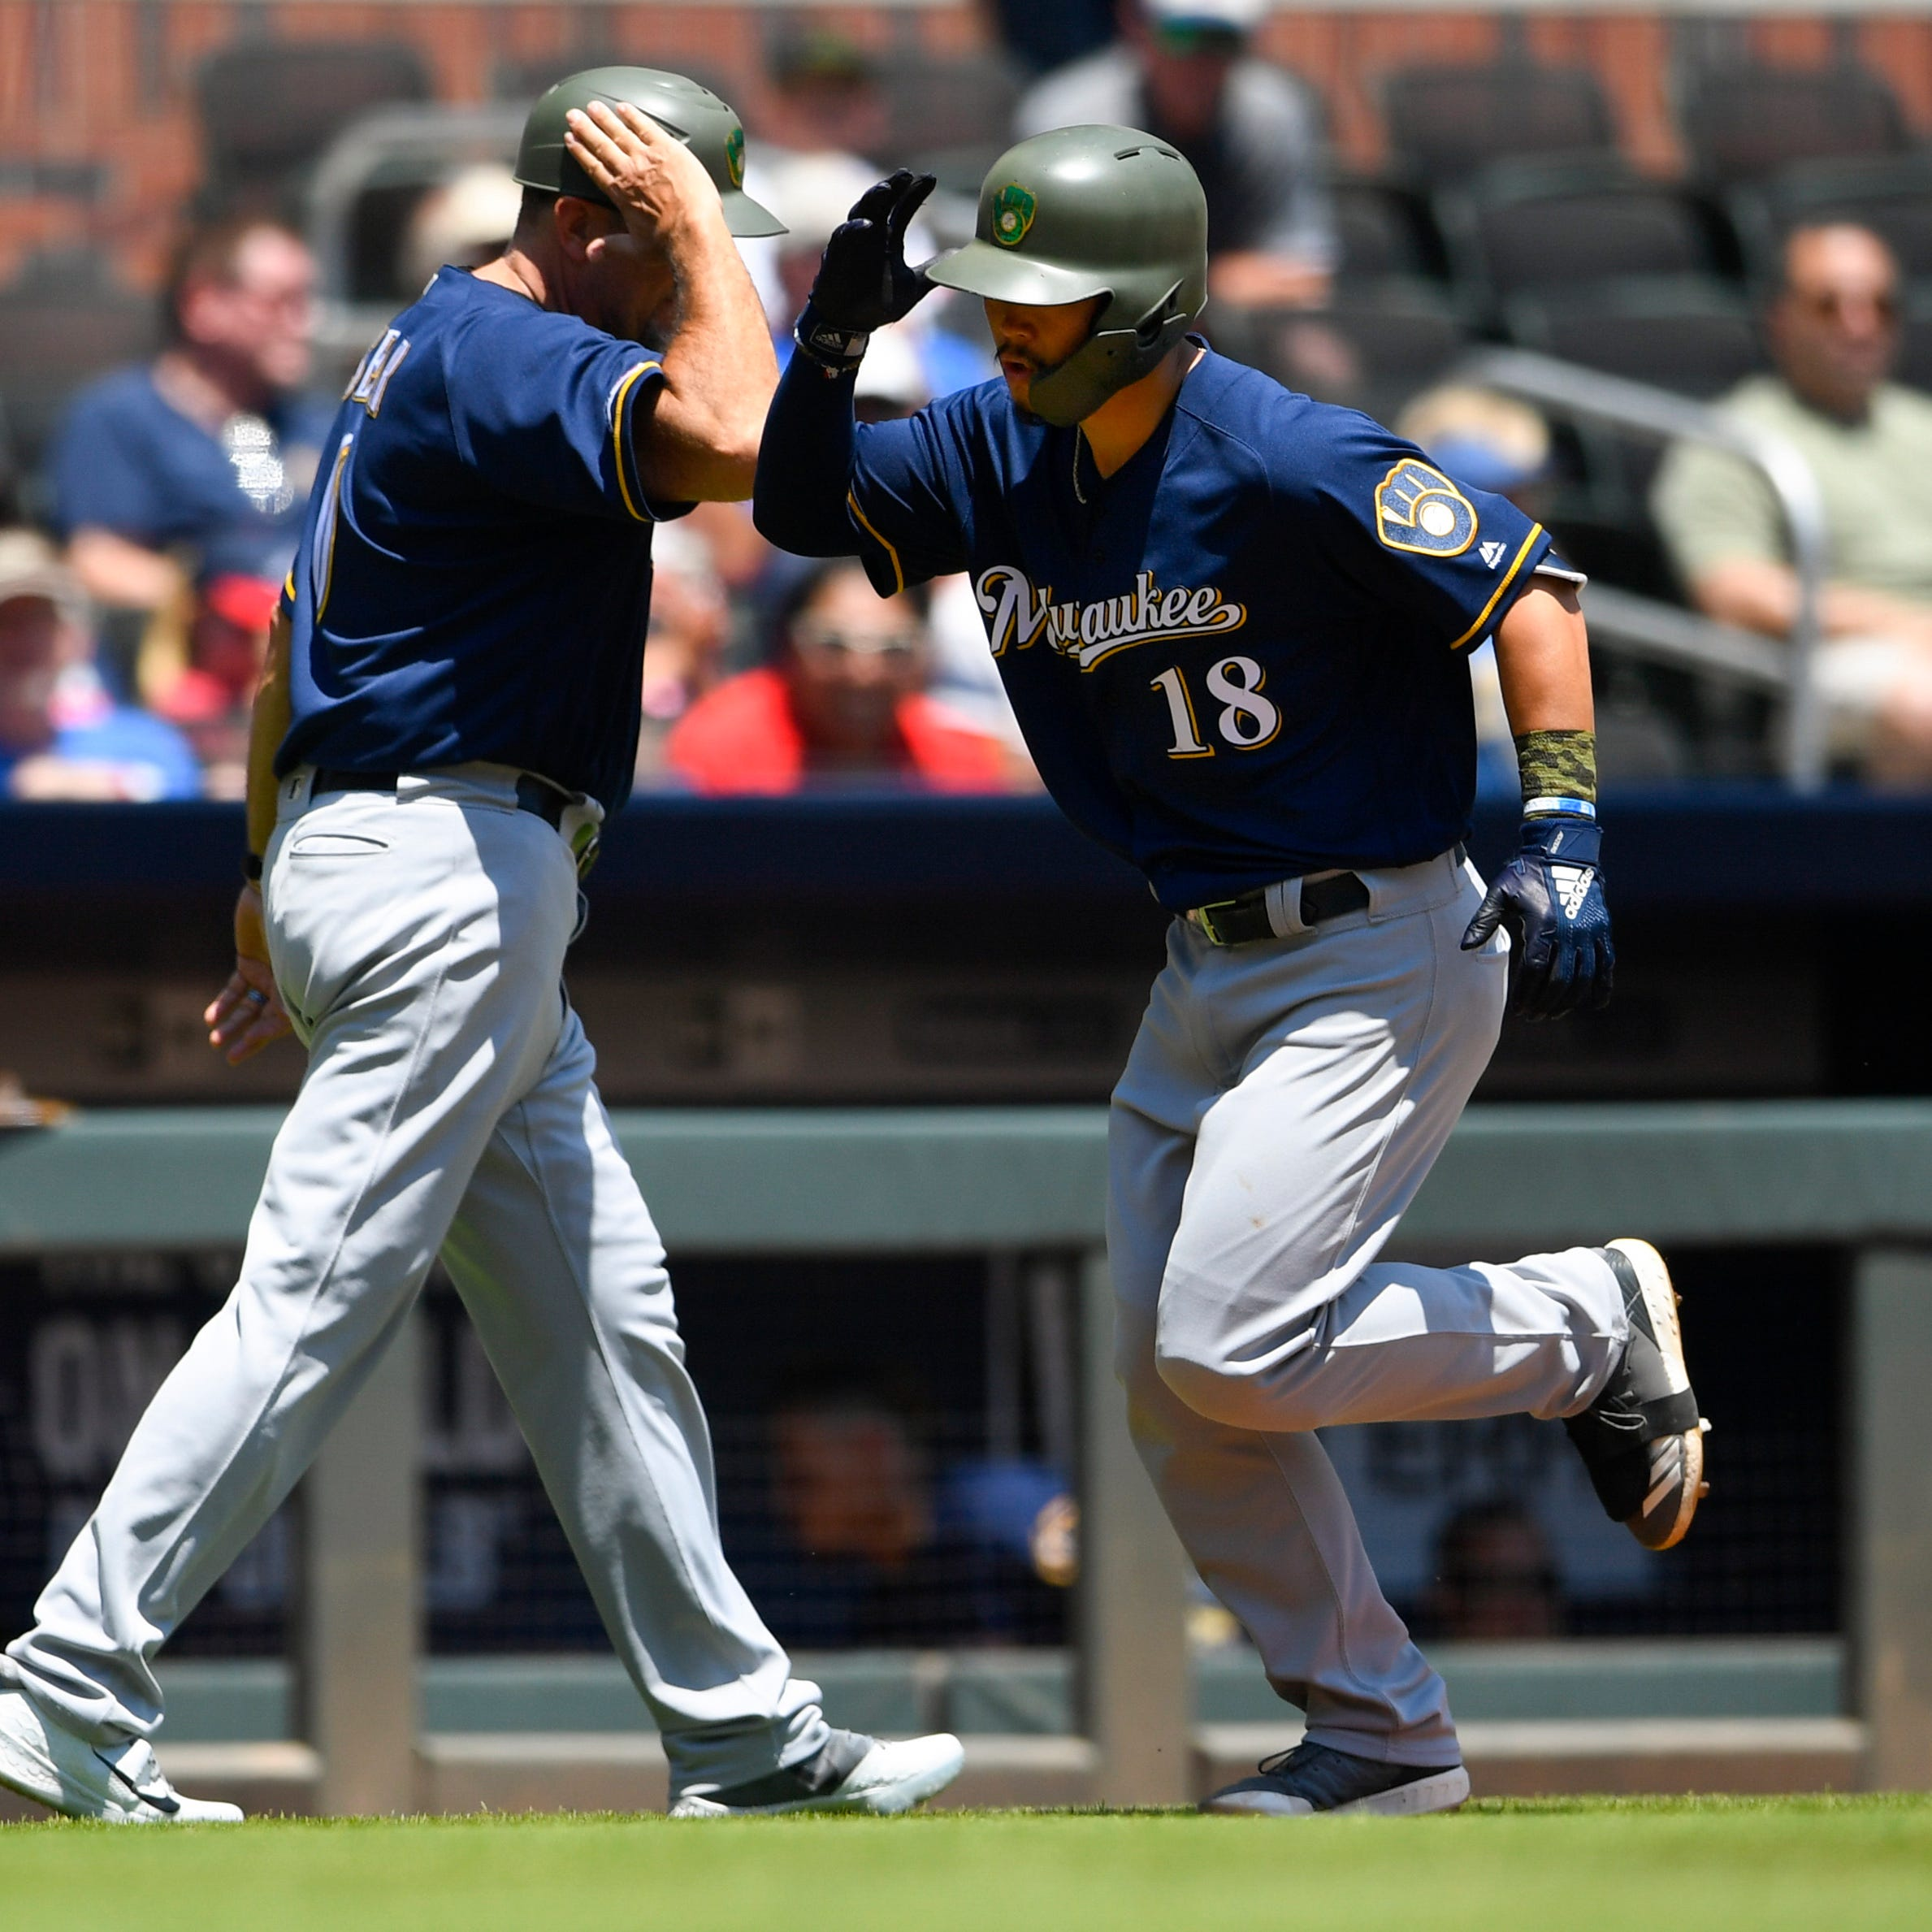 Brewers rookie Keston Hiura goes deep for the first time to cap a big trip of firsts